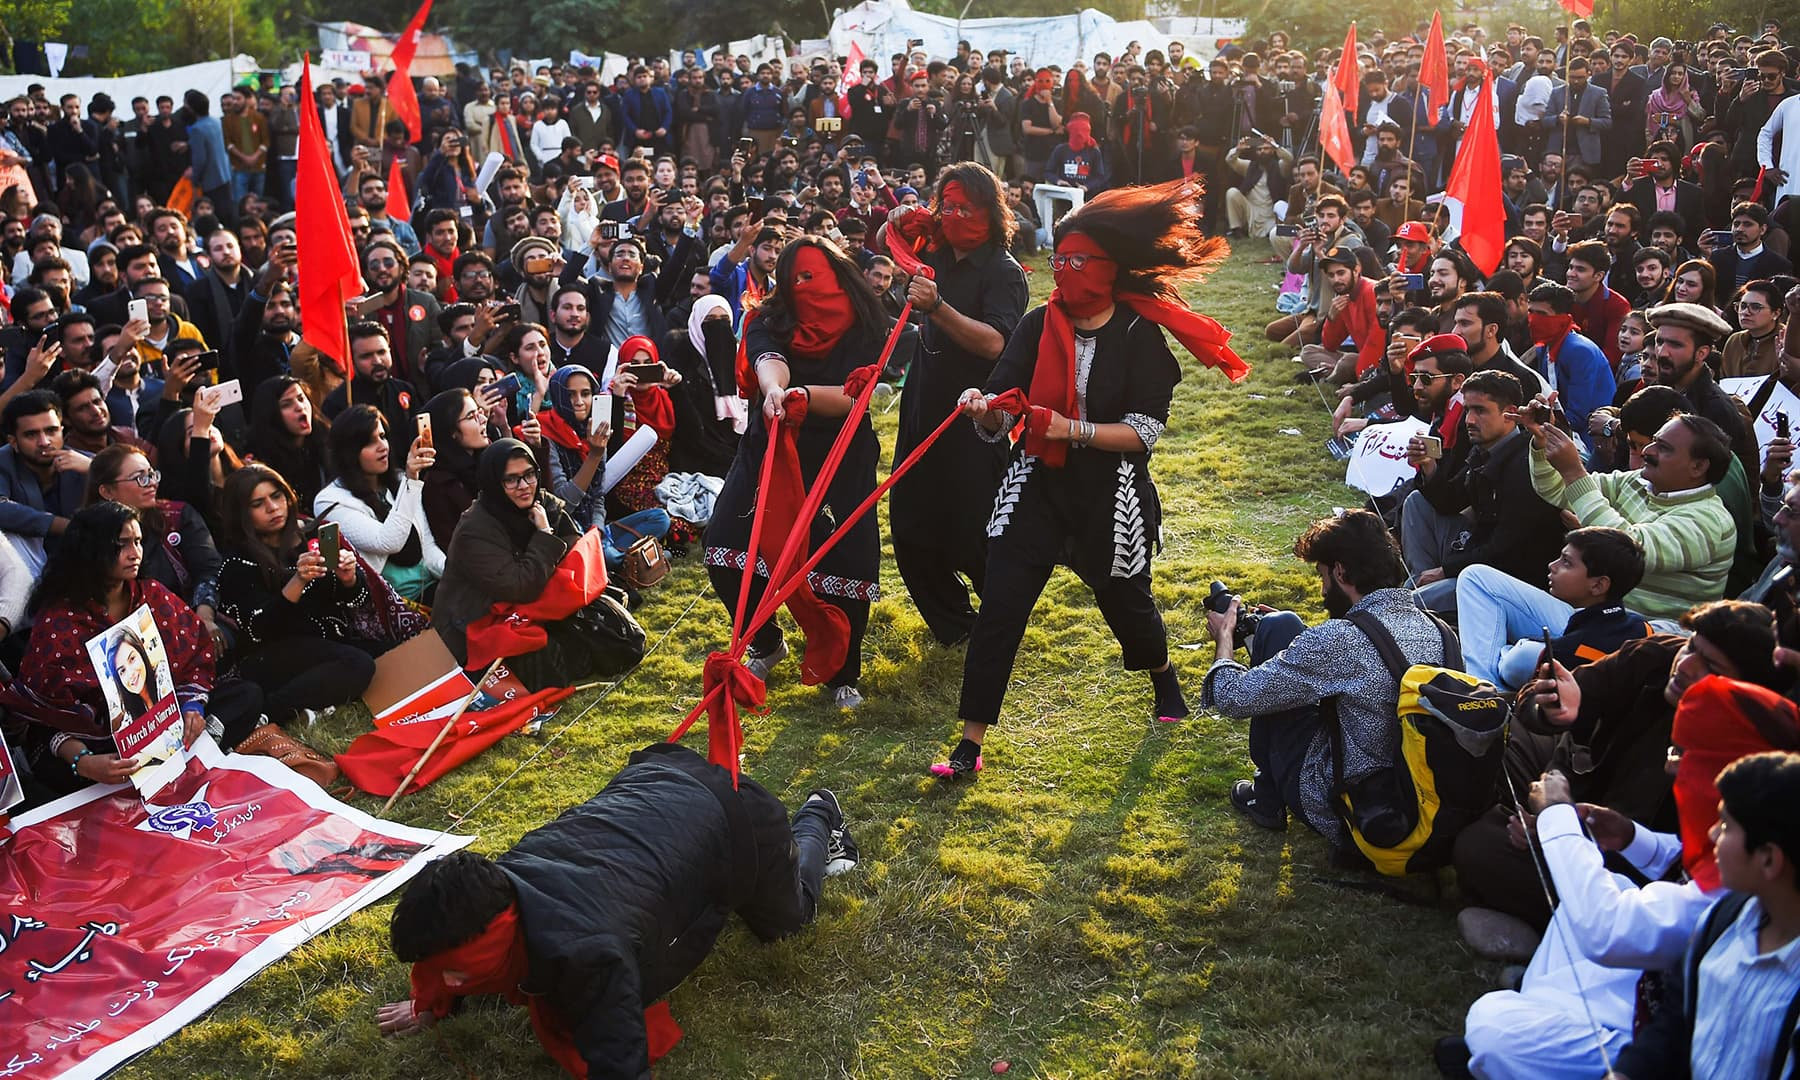 Students putting up a performance to demand better education facilities, in Islamabad on Friday. — AFP